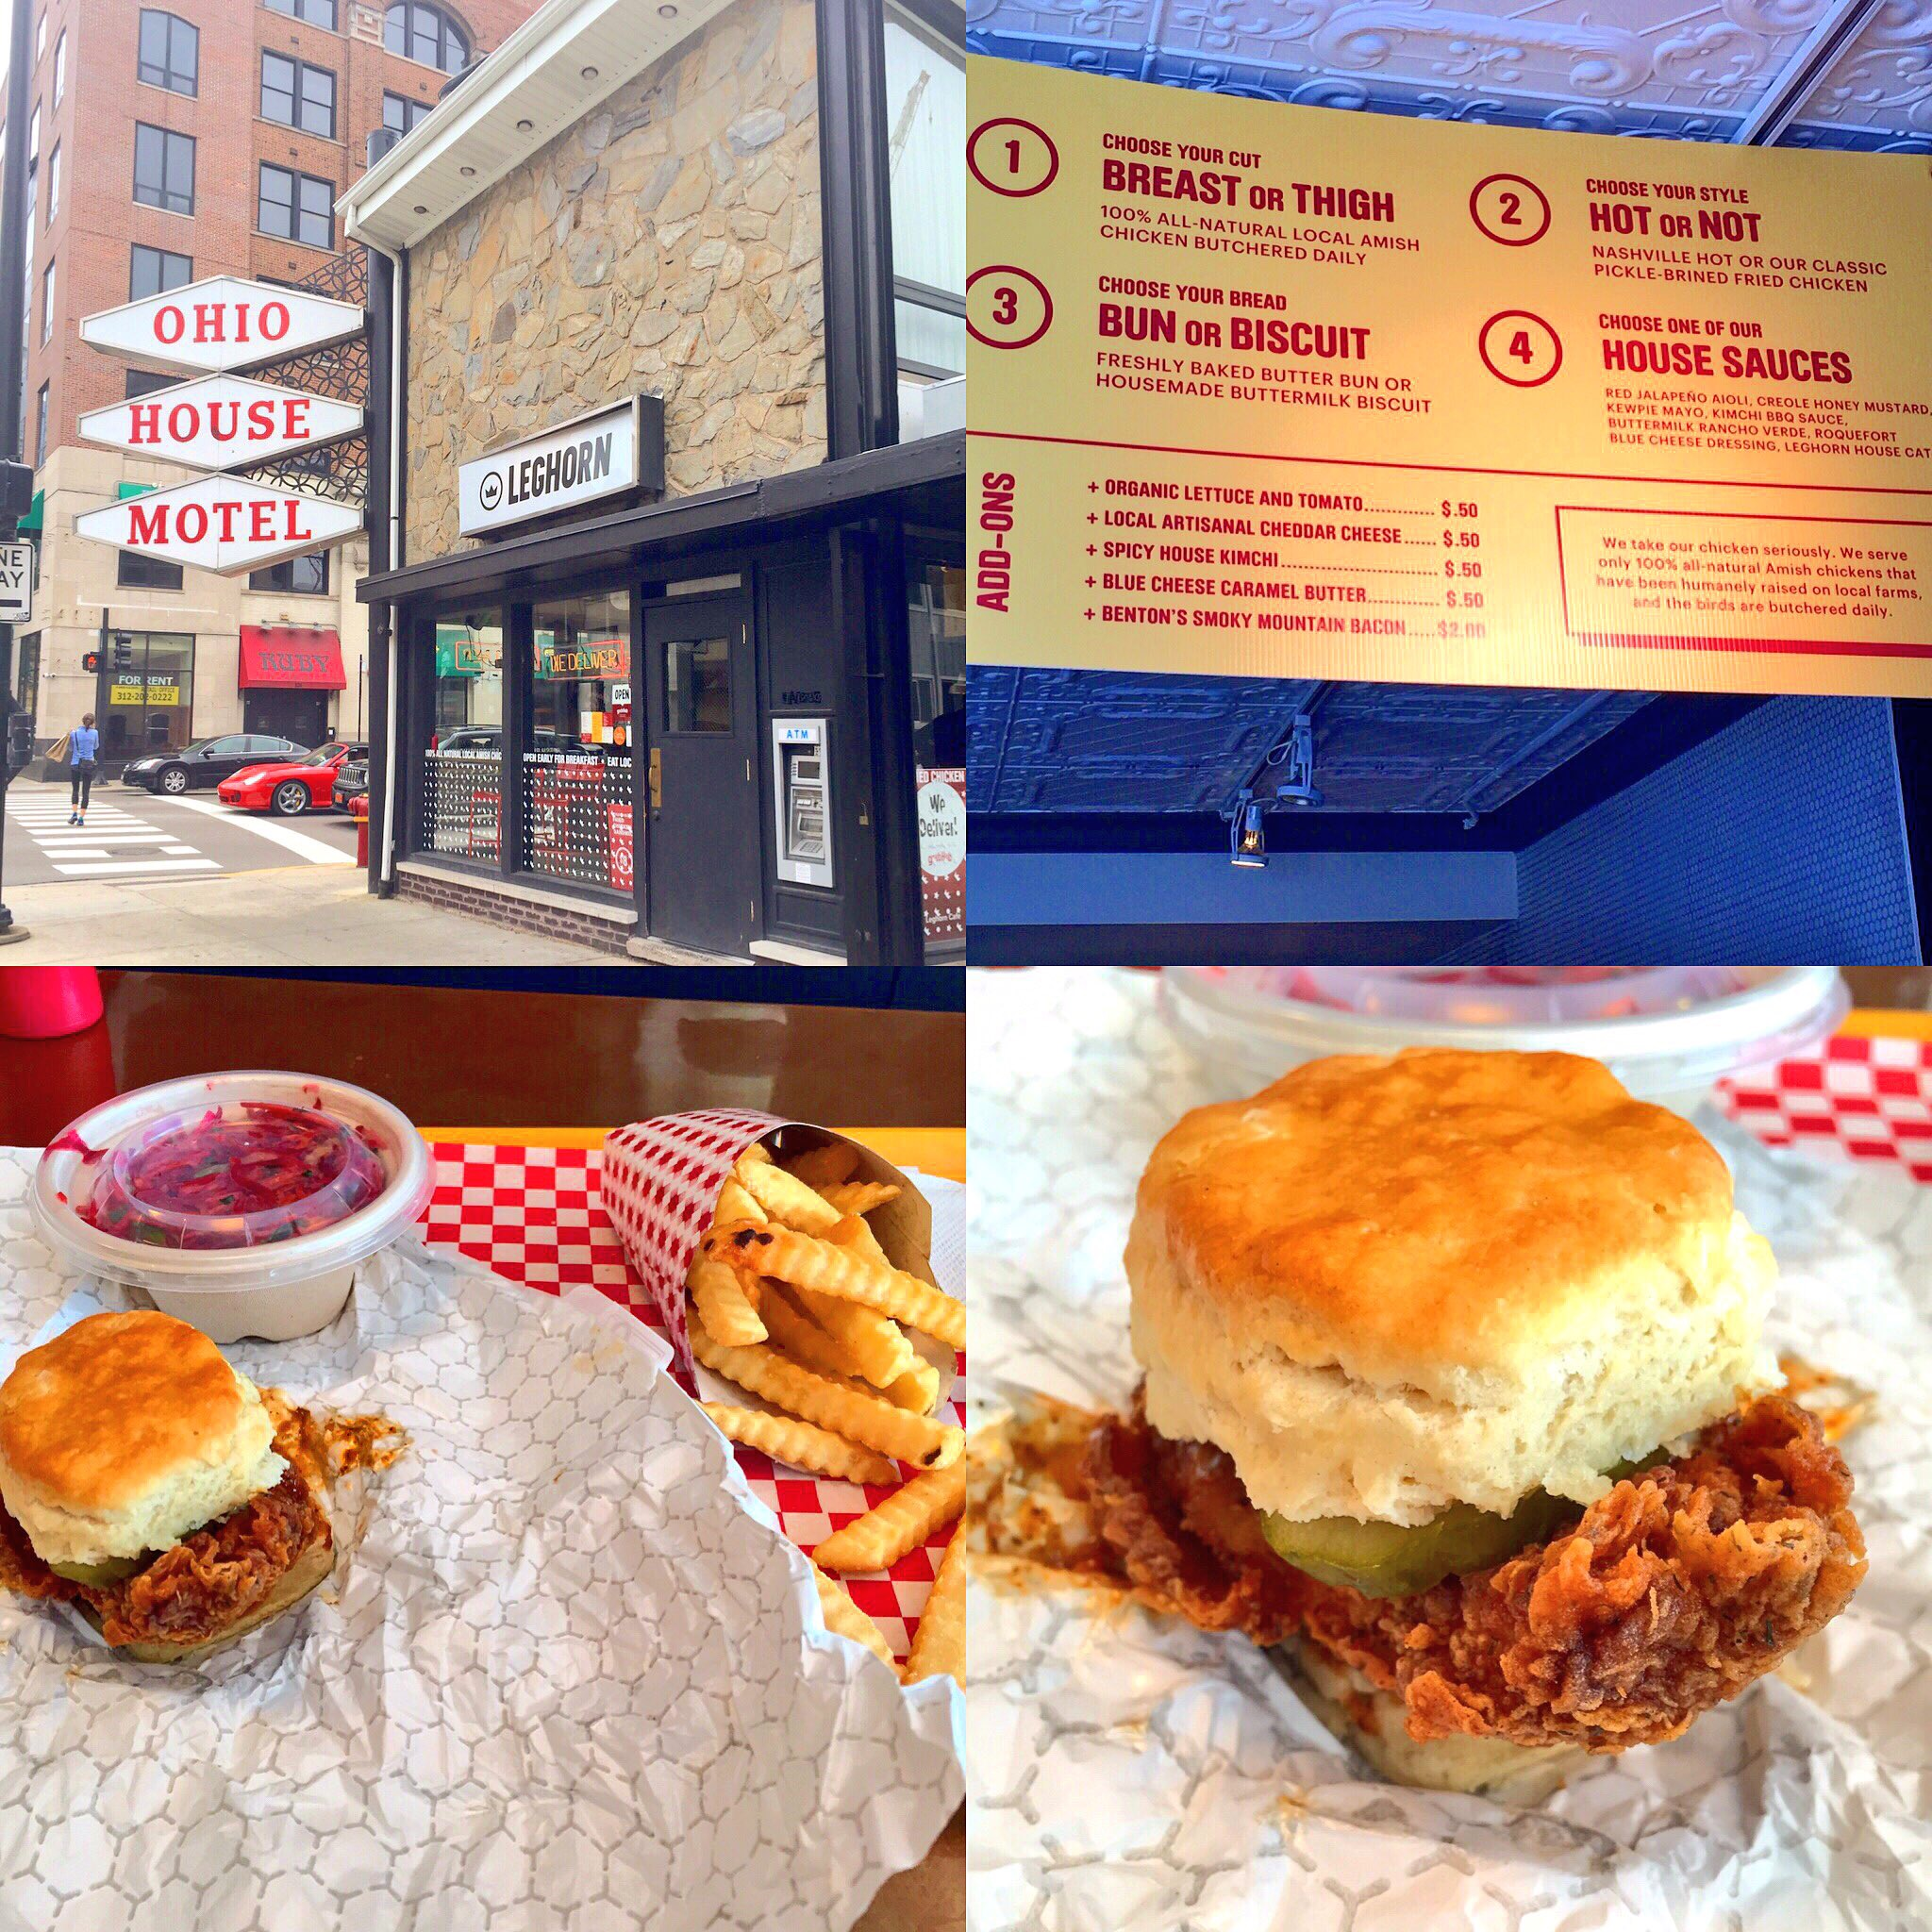 Leghorn's Cafe: Best Chicken and Biscuits in Chi-town!